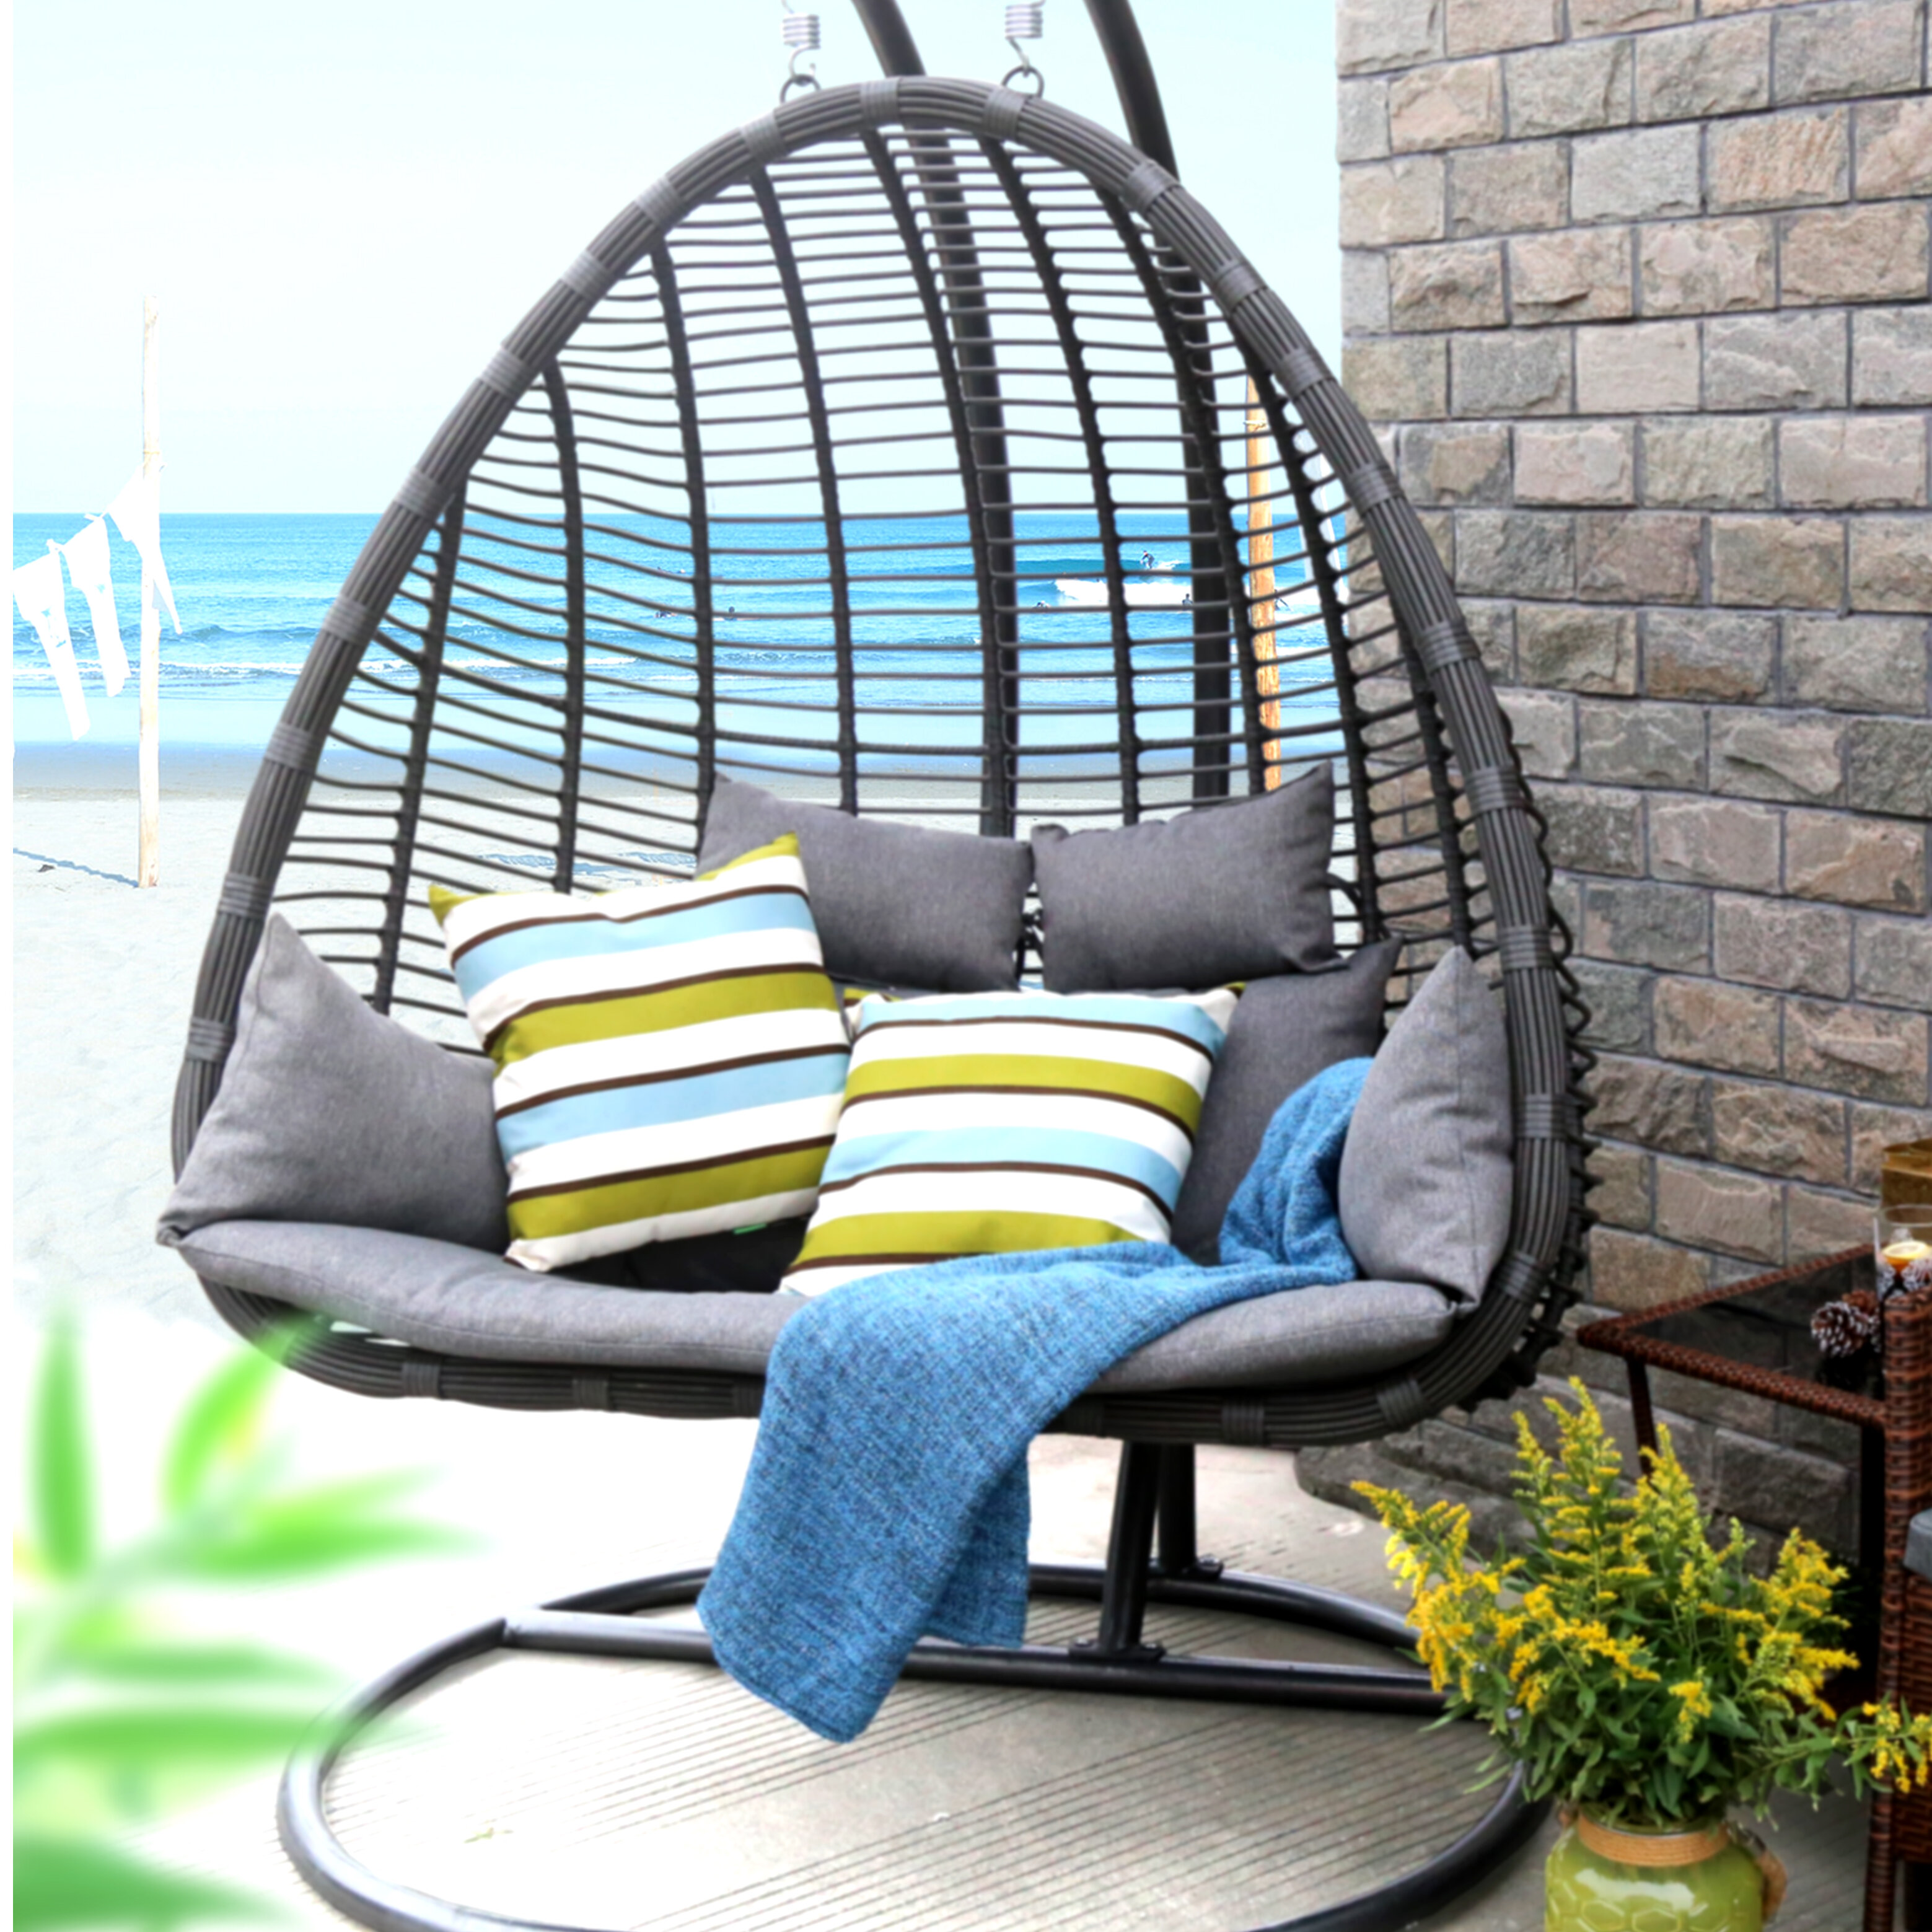 accessories free canopy ga standing hammocks collapsible with cheerful bliss sightly wooden stands for athayneedle hbhsko stand awesome chair hammock amazon